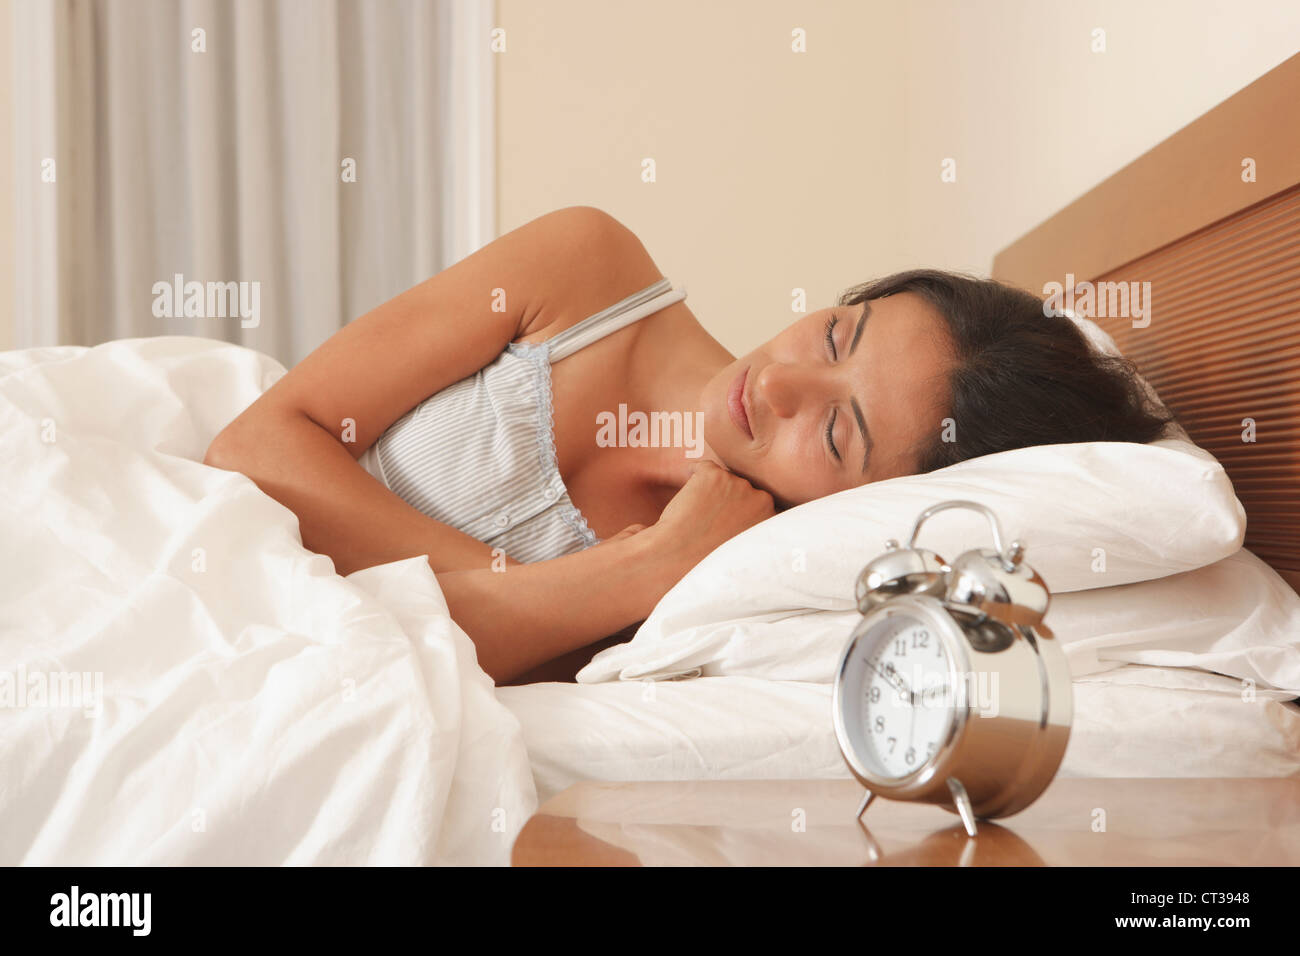 Woman asleep in bed - Stock Image